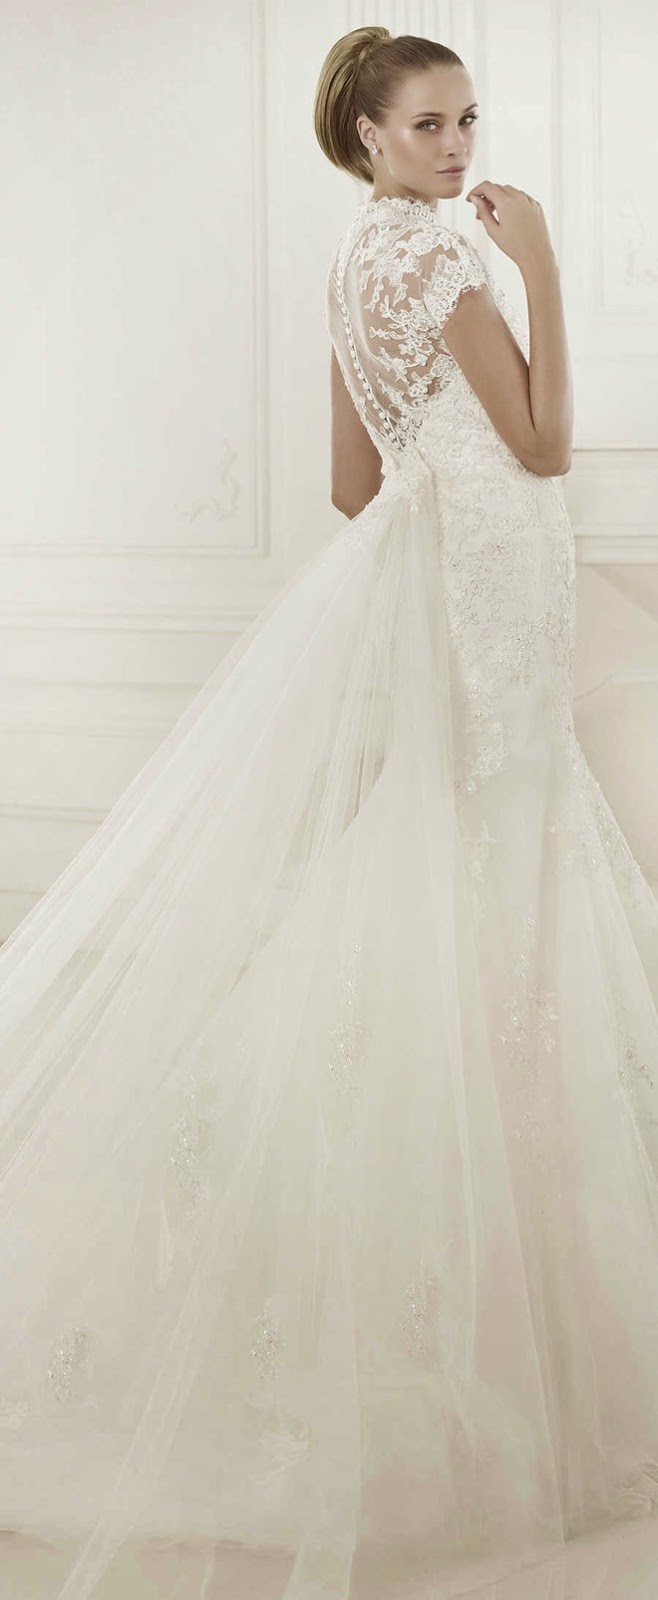 Pronovias 2015 Bridal Collections - Part 2 - Belle The Magazine